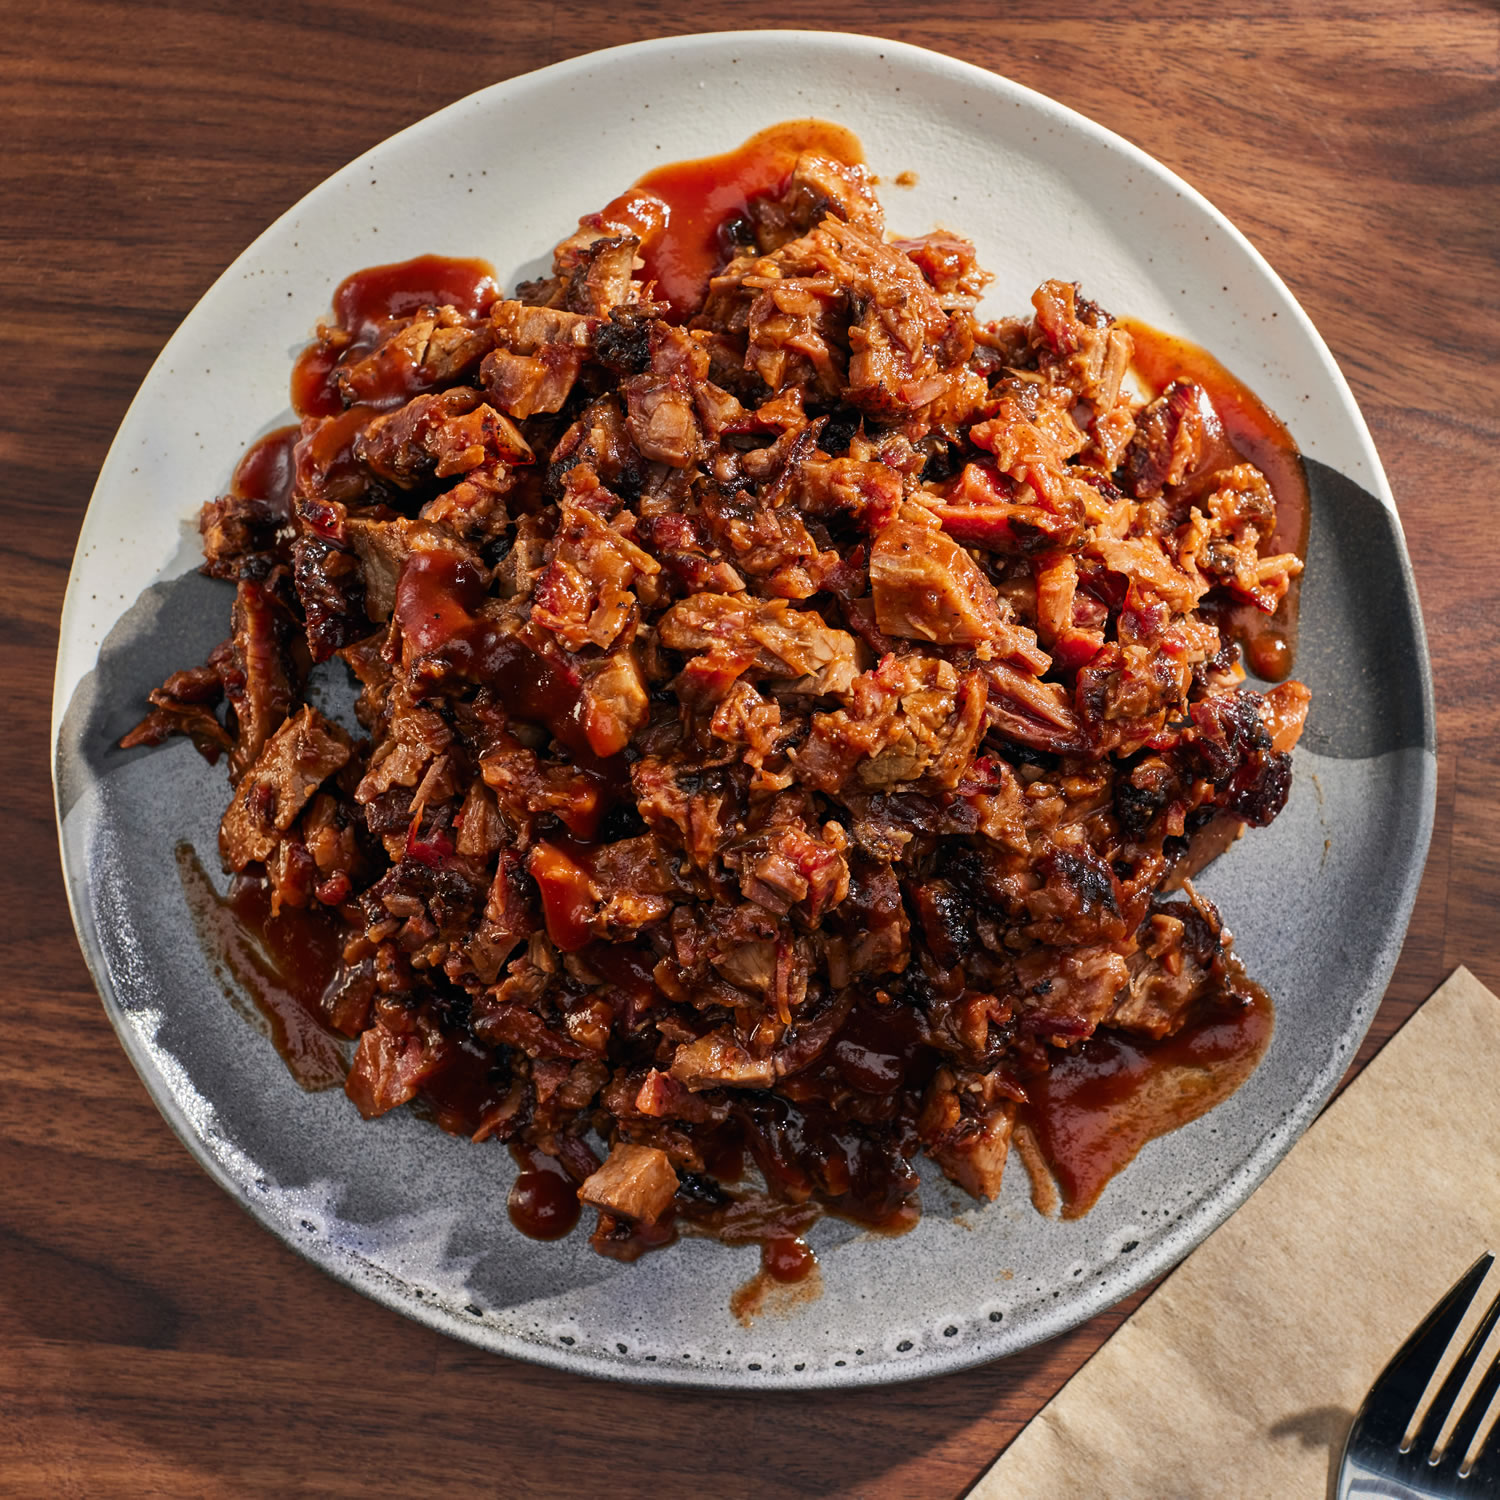 Chopped Beef Brisket 3 to 7 (1 lb) Packs